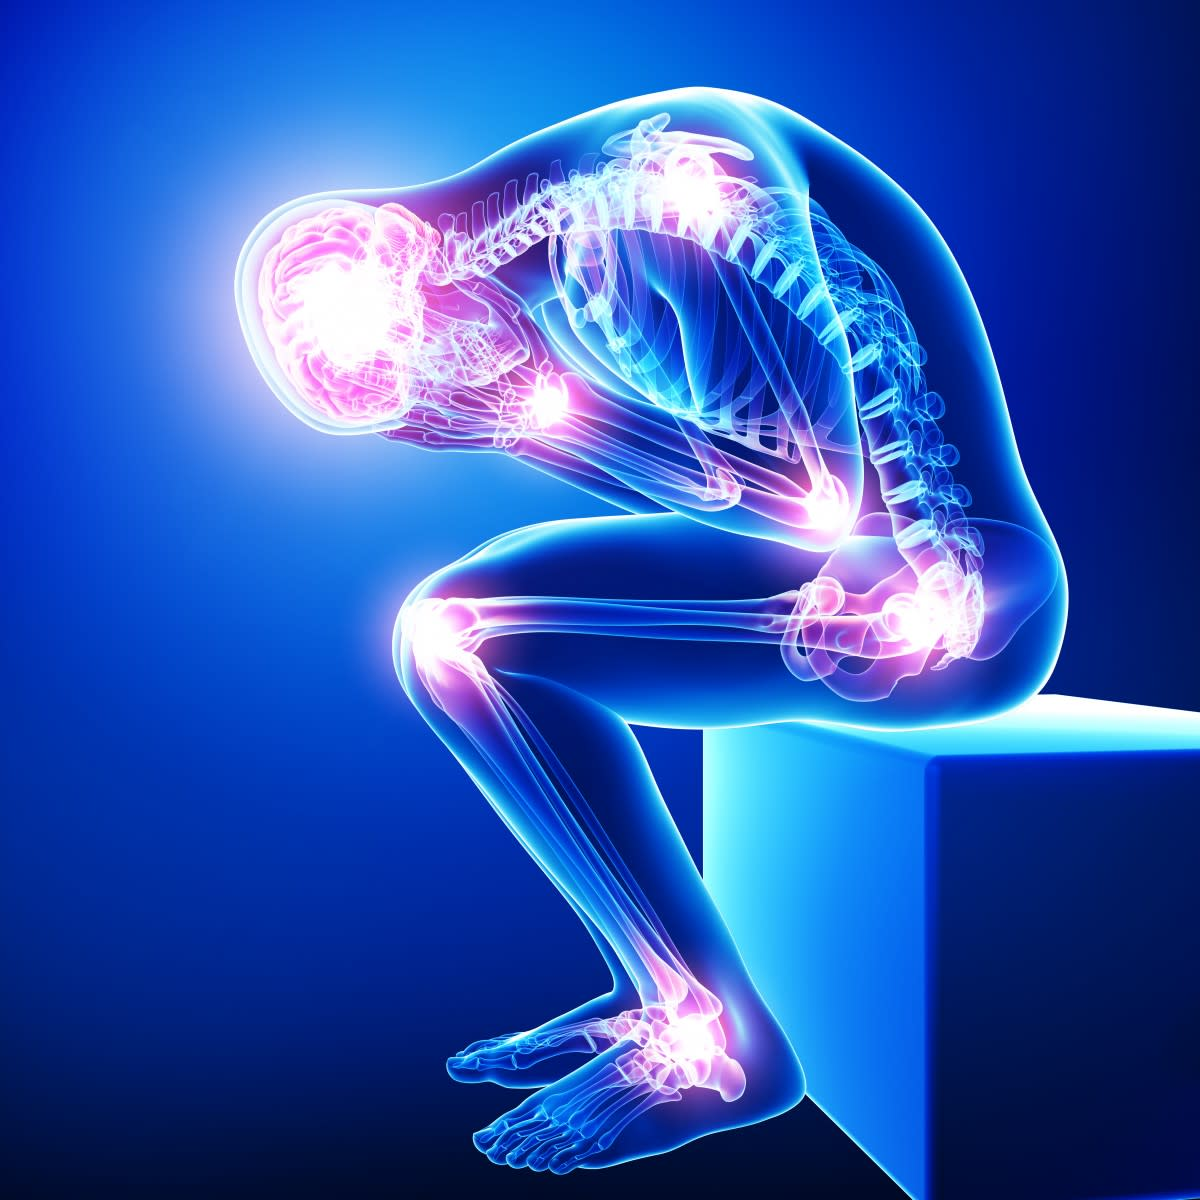 At any given time a person who suffers from Fibromyalgia may experience pain in all of the tender points and more, or just a few. Pain can vary and change suddenly from mild, to moderate, to severe. When a flare strikes it is unpredictable.